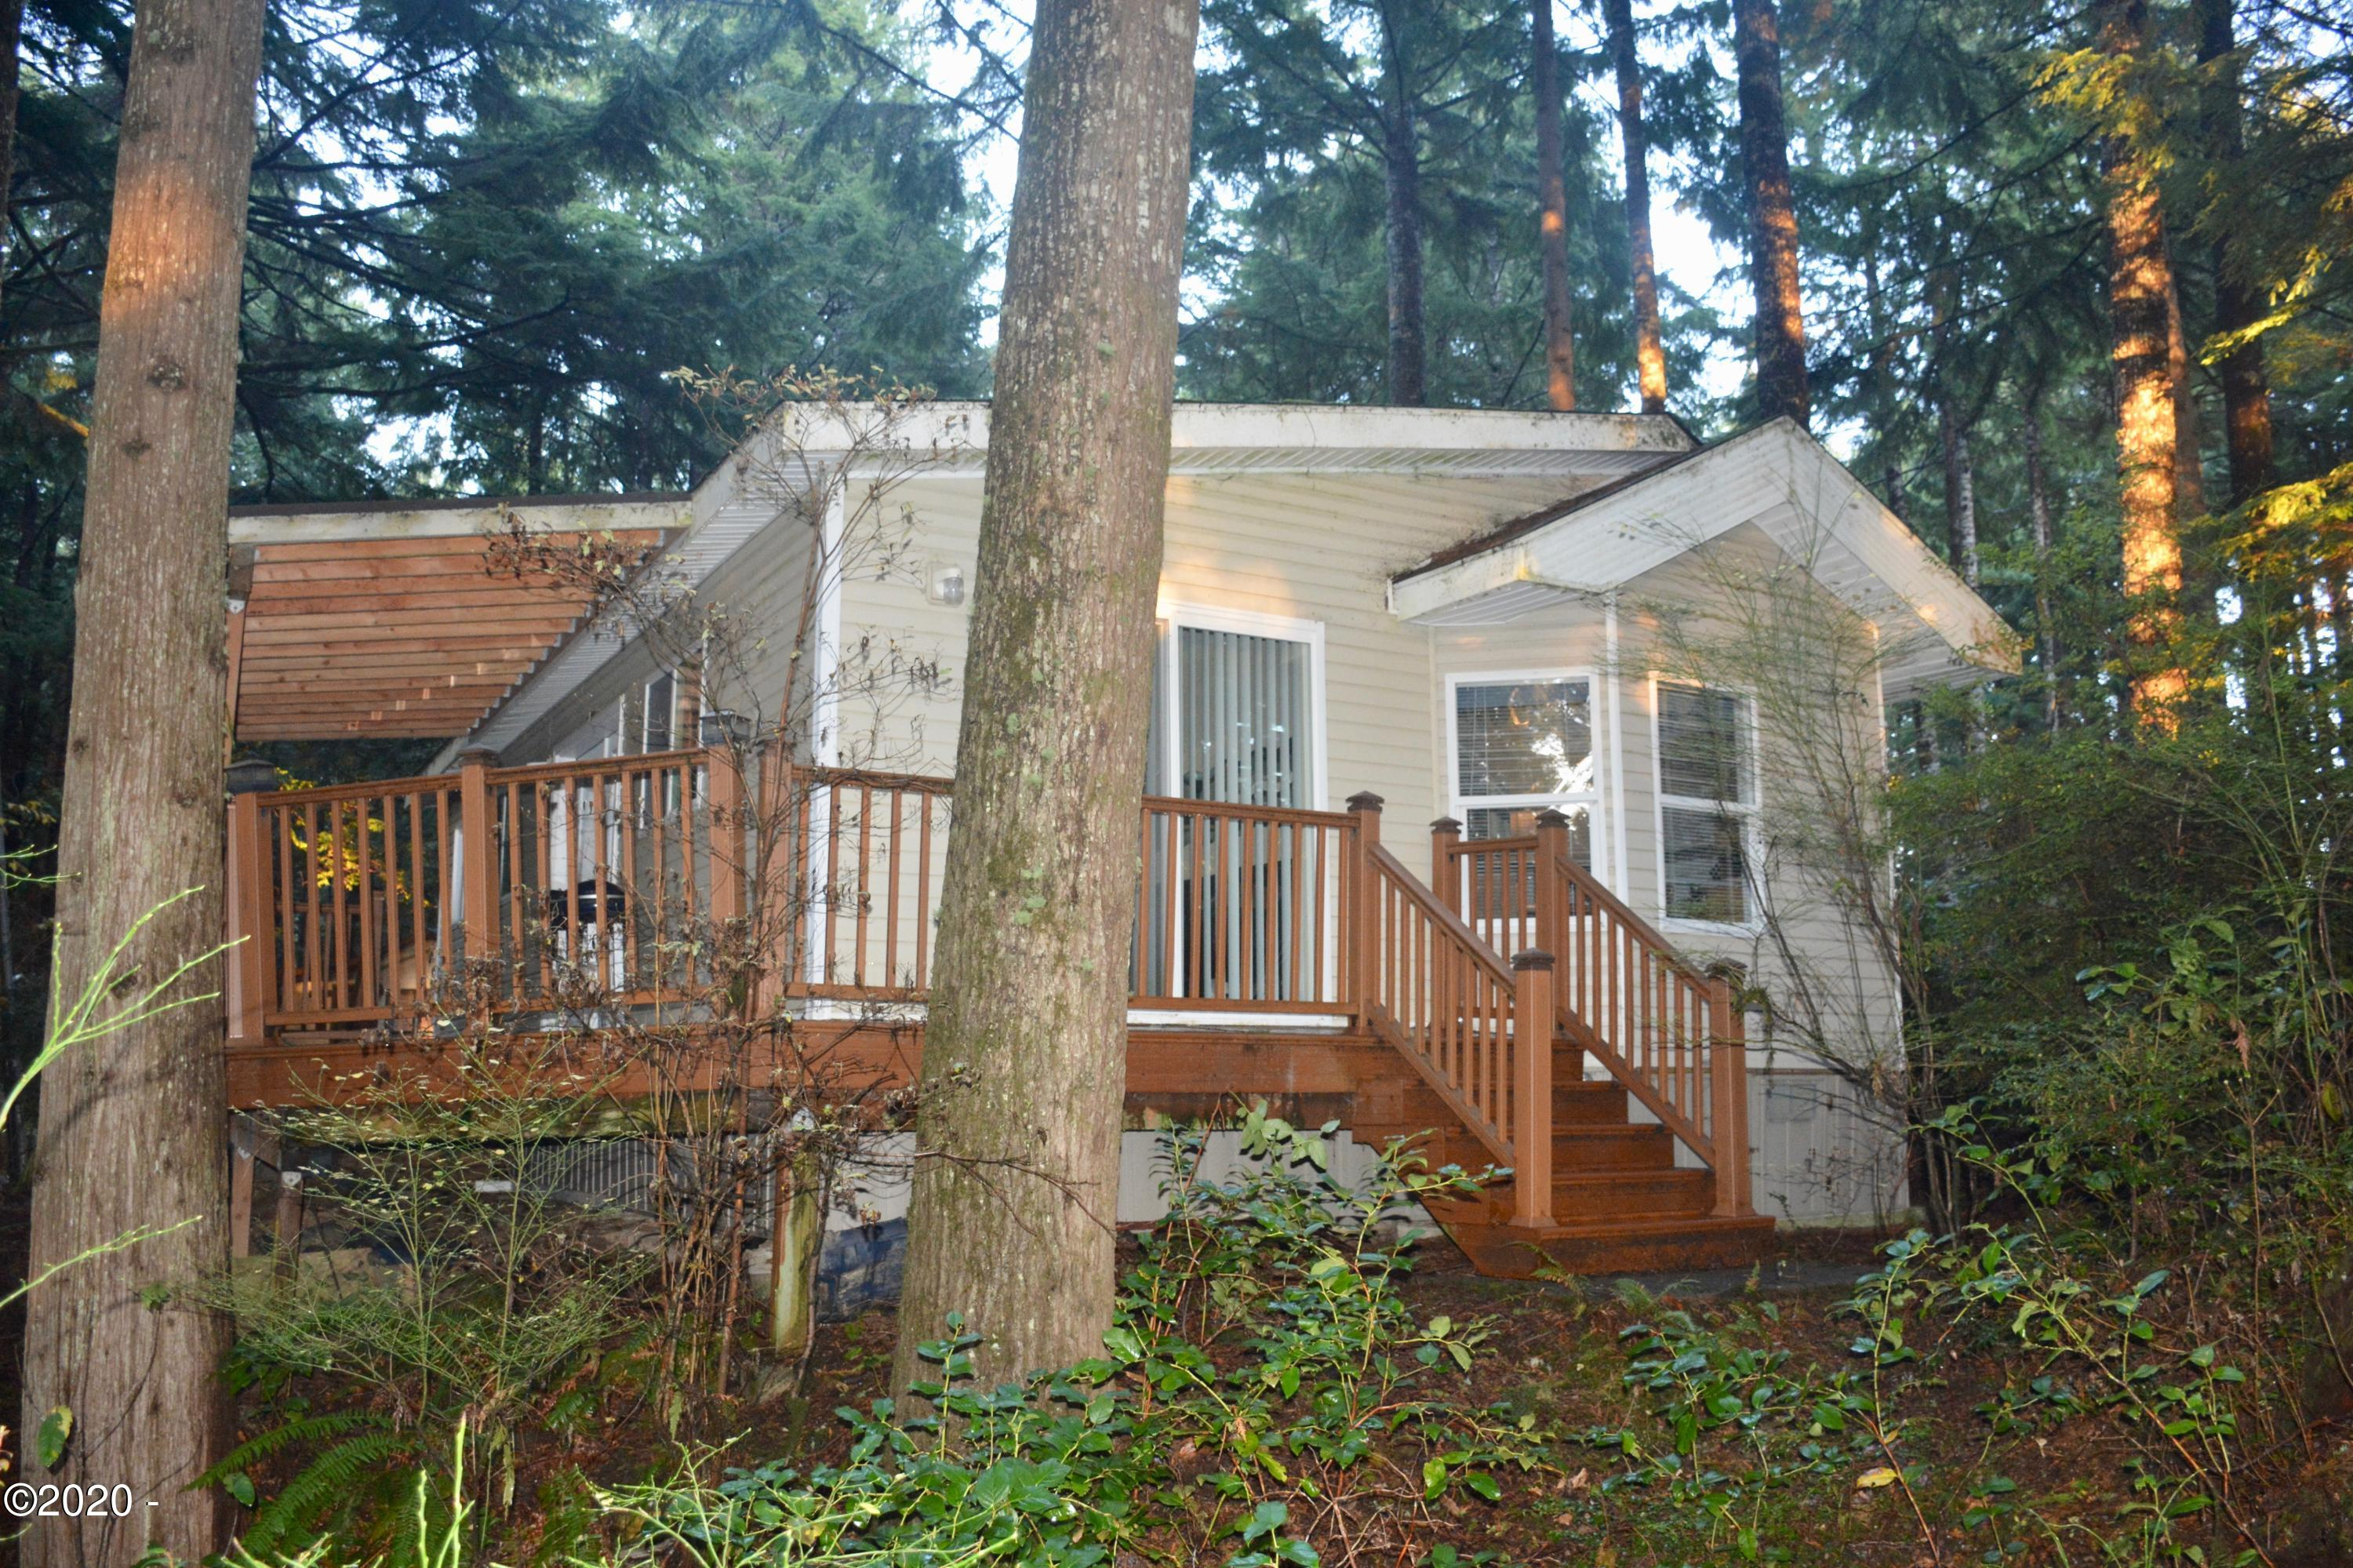 3700 N Hwy 101, Space 50, Depoe Bay, OR 97341 - Front of home